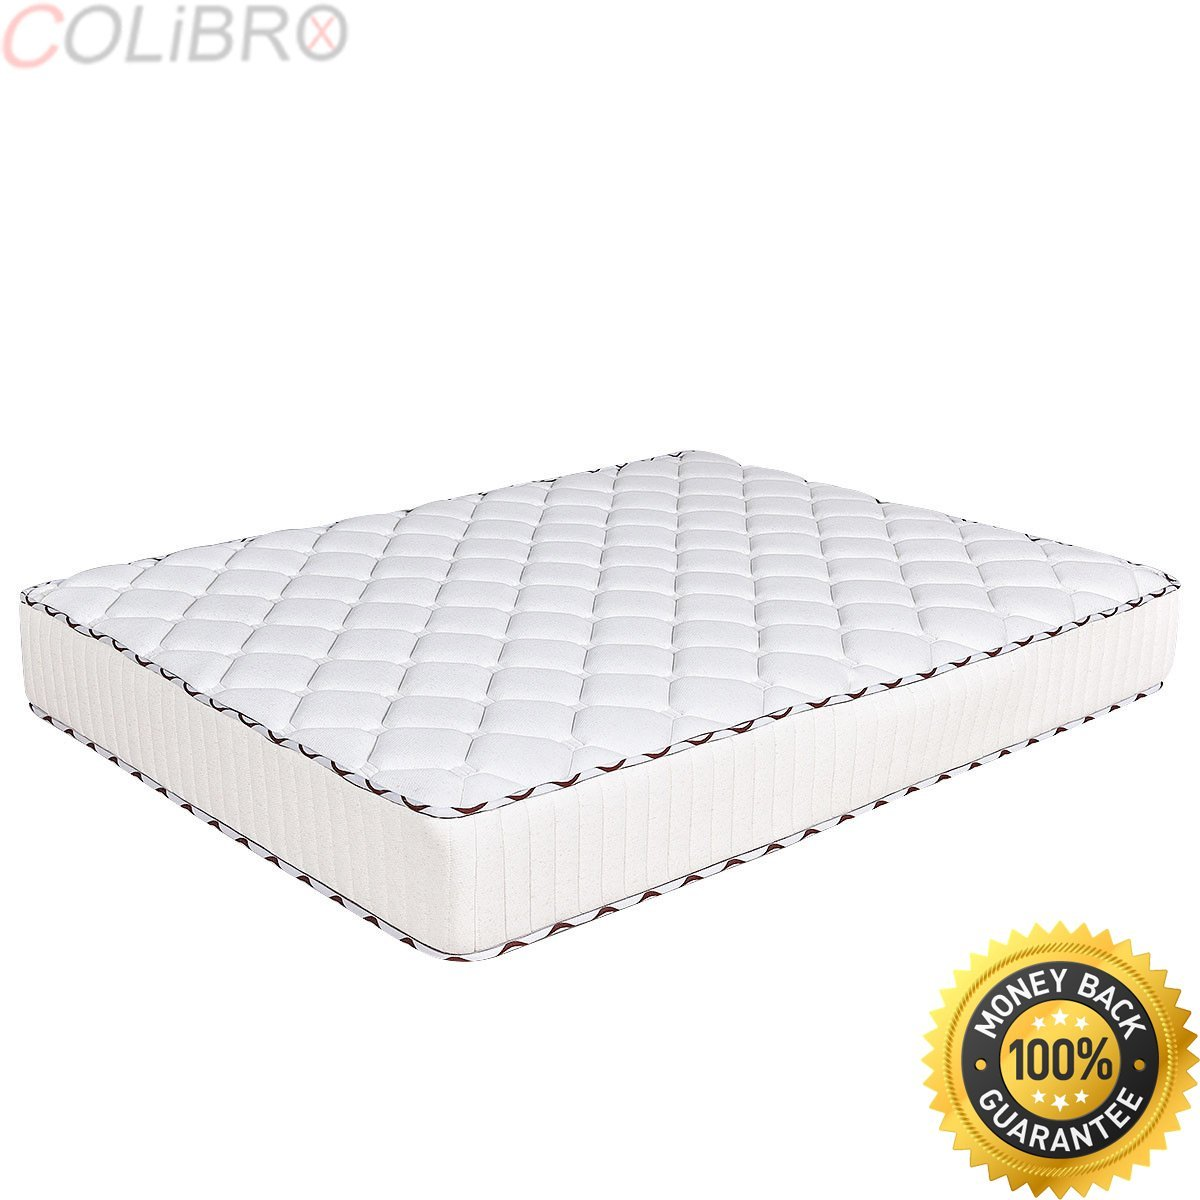 Best Mattress Amazon Cheap Bed Toppers Memory Foam Find Bed Toppers Memory Foam Deals